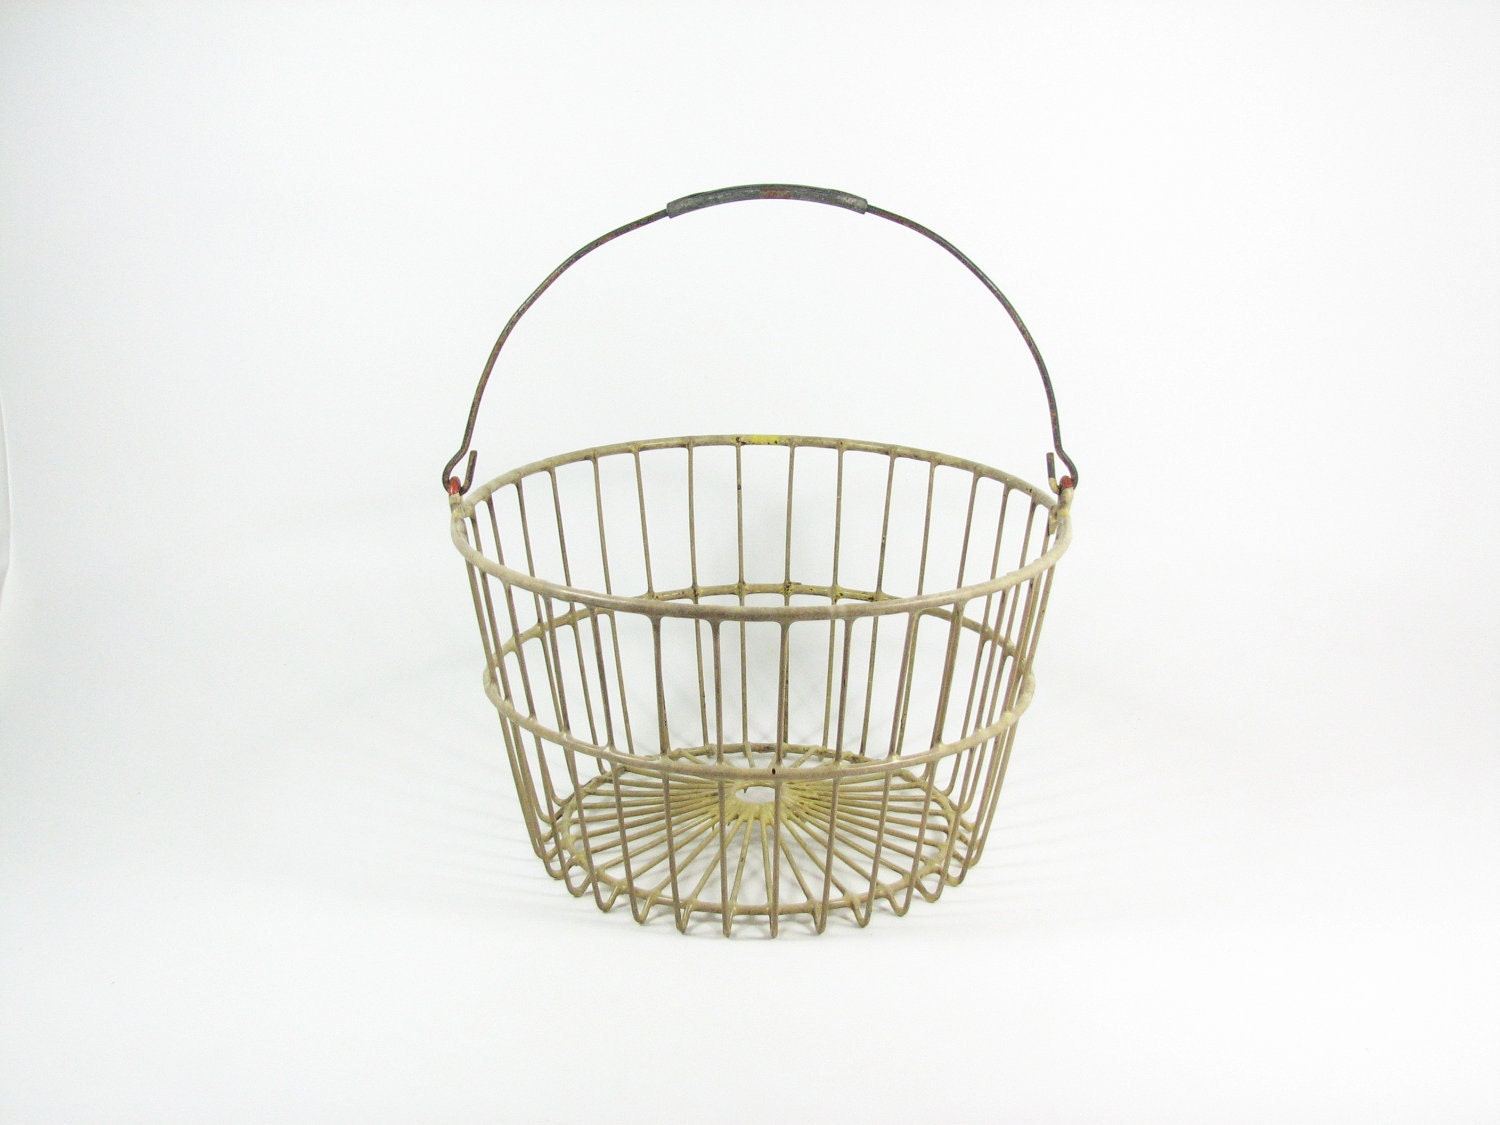 Vintage Egg Basket Metal Wire Tote With Handle By